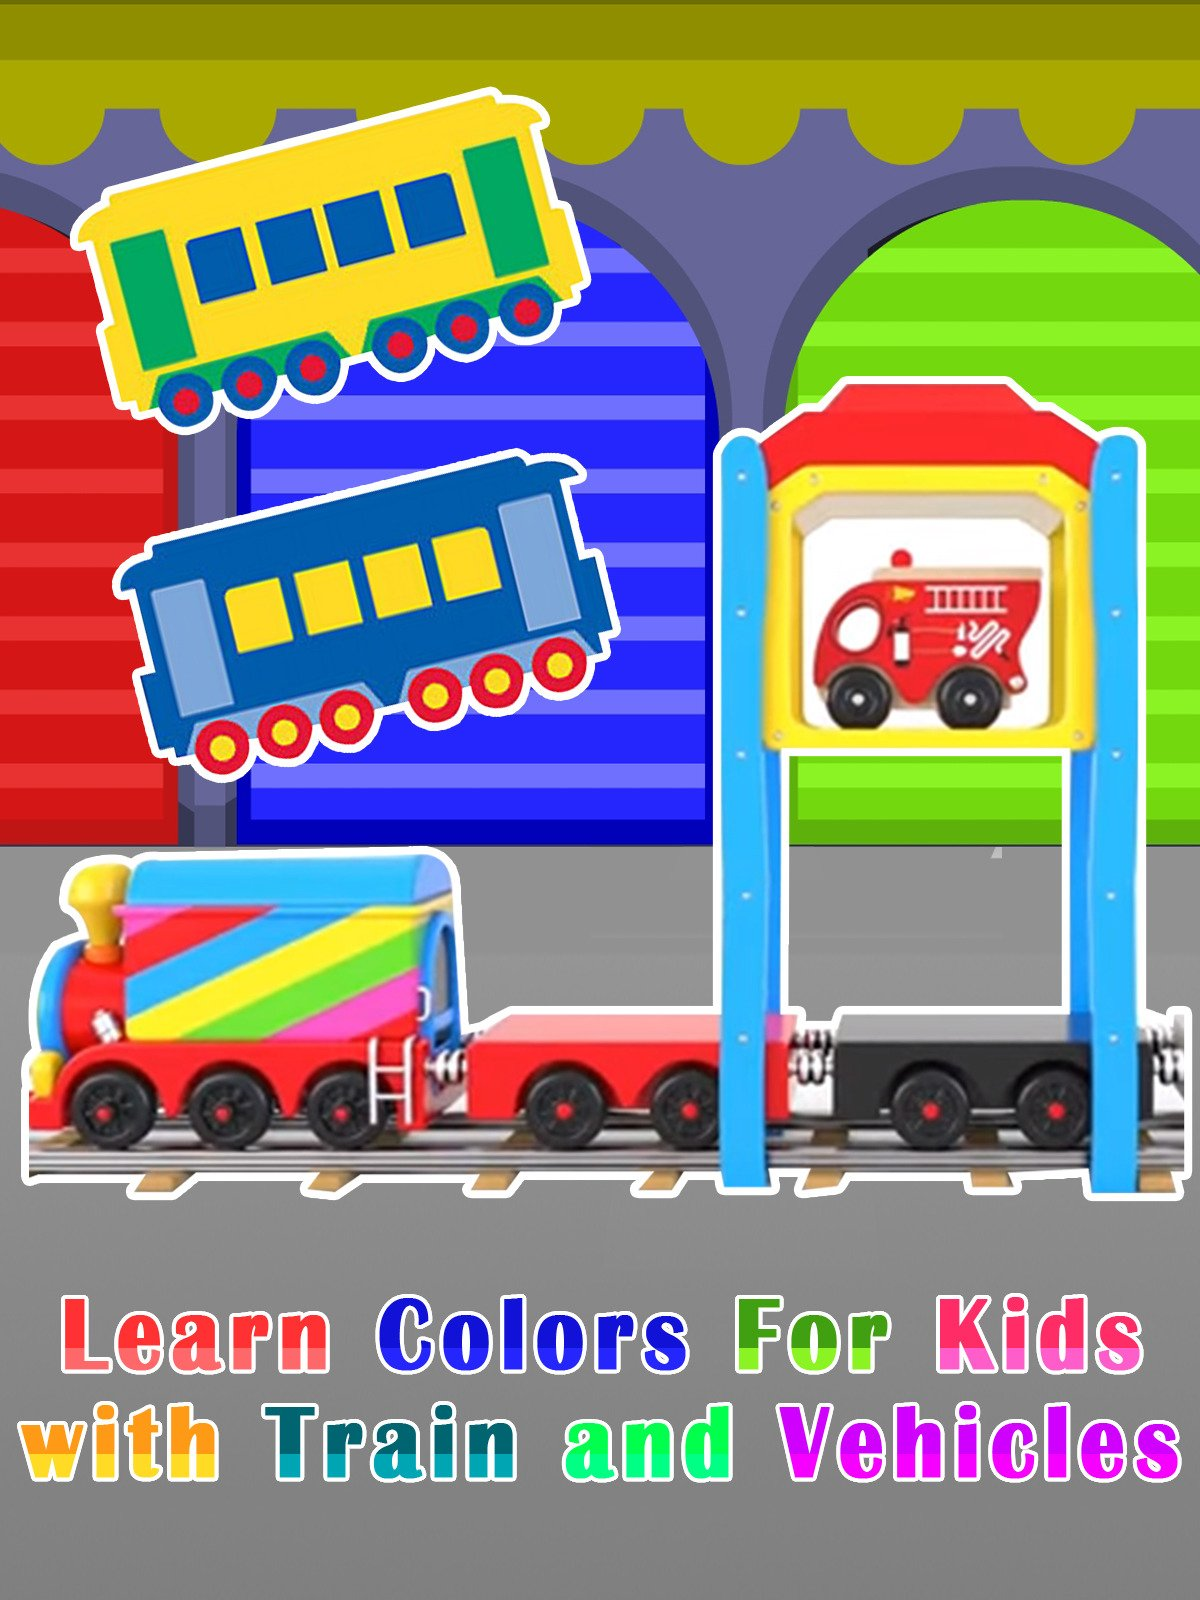 Learn Colors For Kids with Train and Vehicles